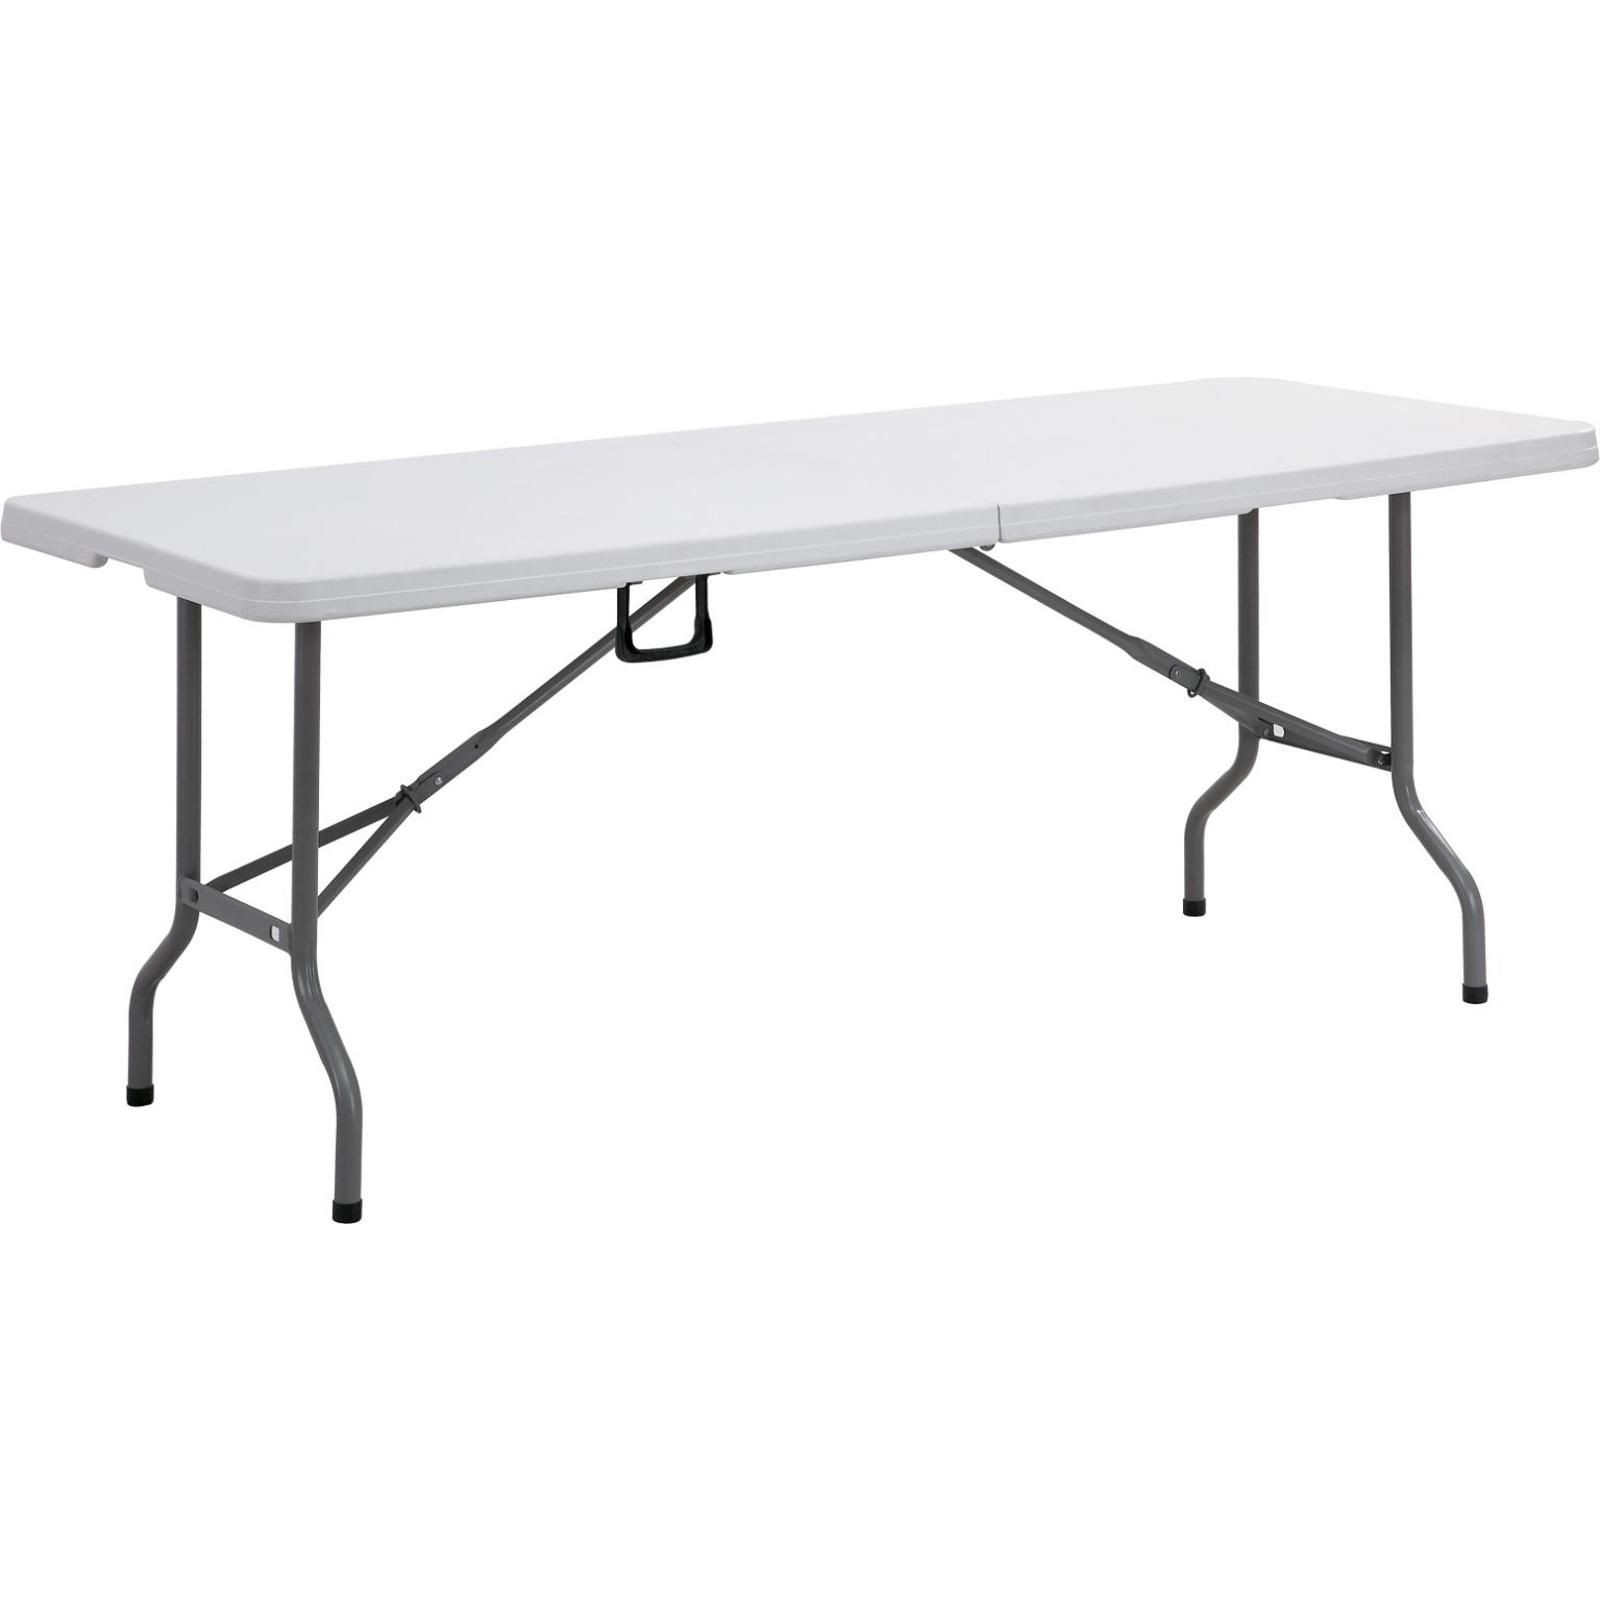 - Astonishing Fancy Folding Tables Of Ideas Of Furniture Big Lots Chairs  Cosco - ACNN DECOR